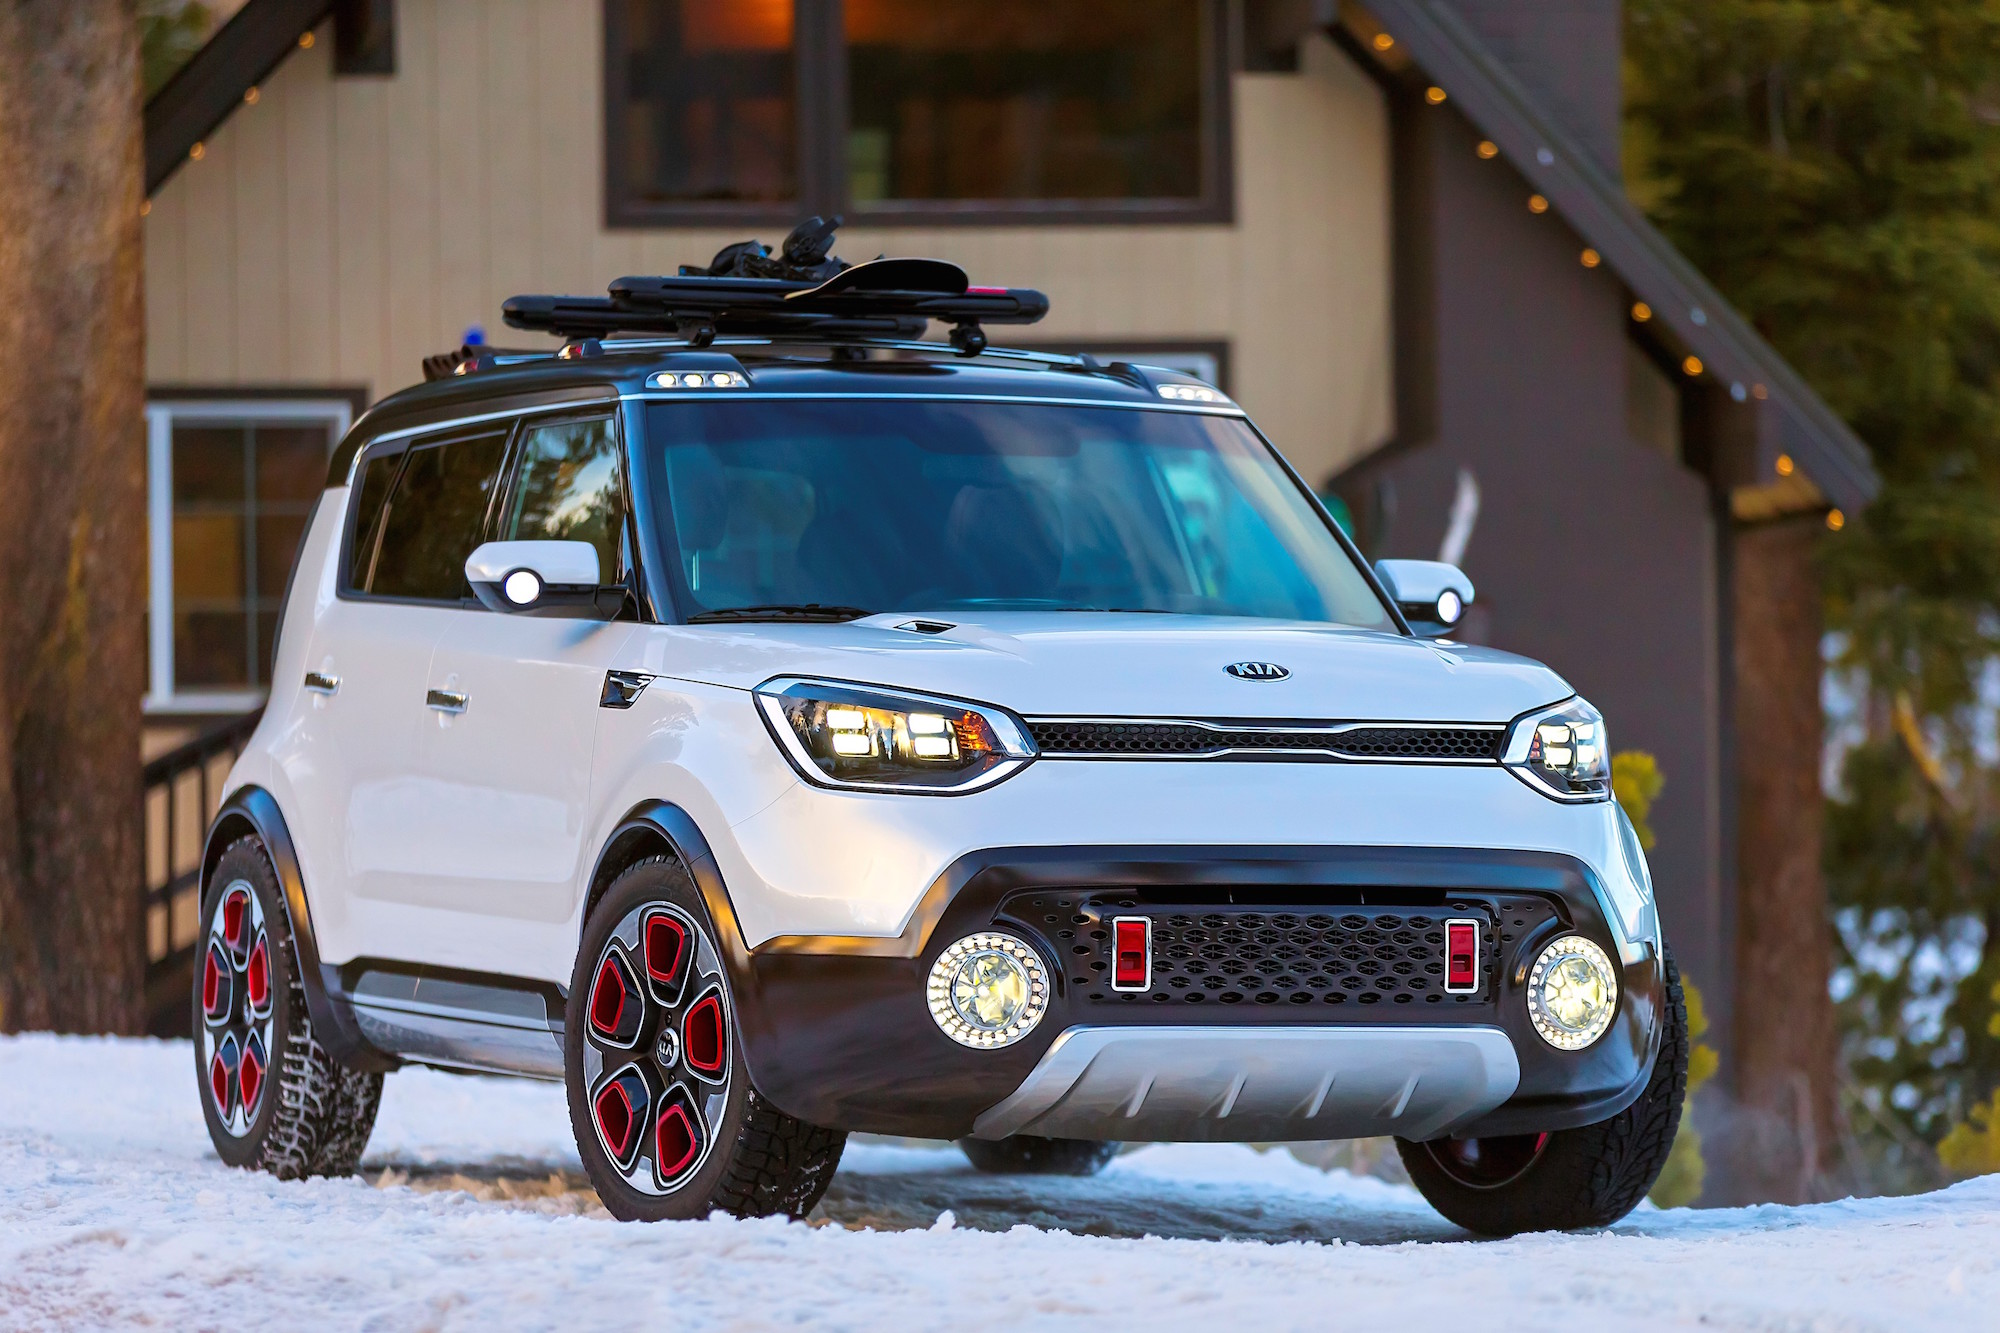 Kia Trail Ster E Awd Soul Hybrid Concept Unveiled At Chicago Auto Show